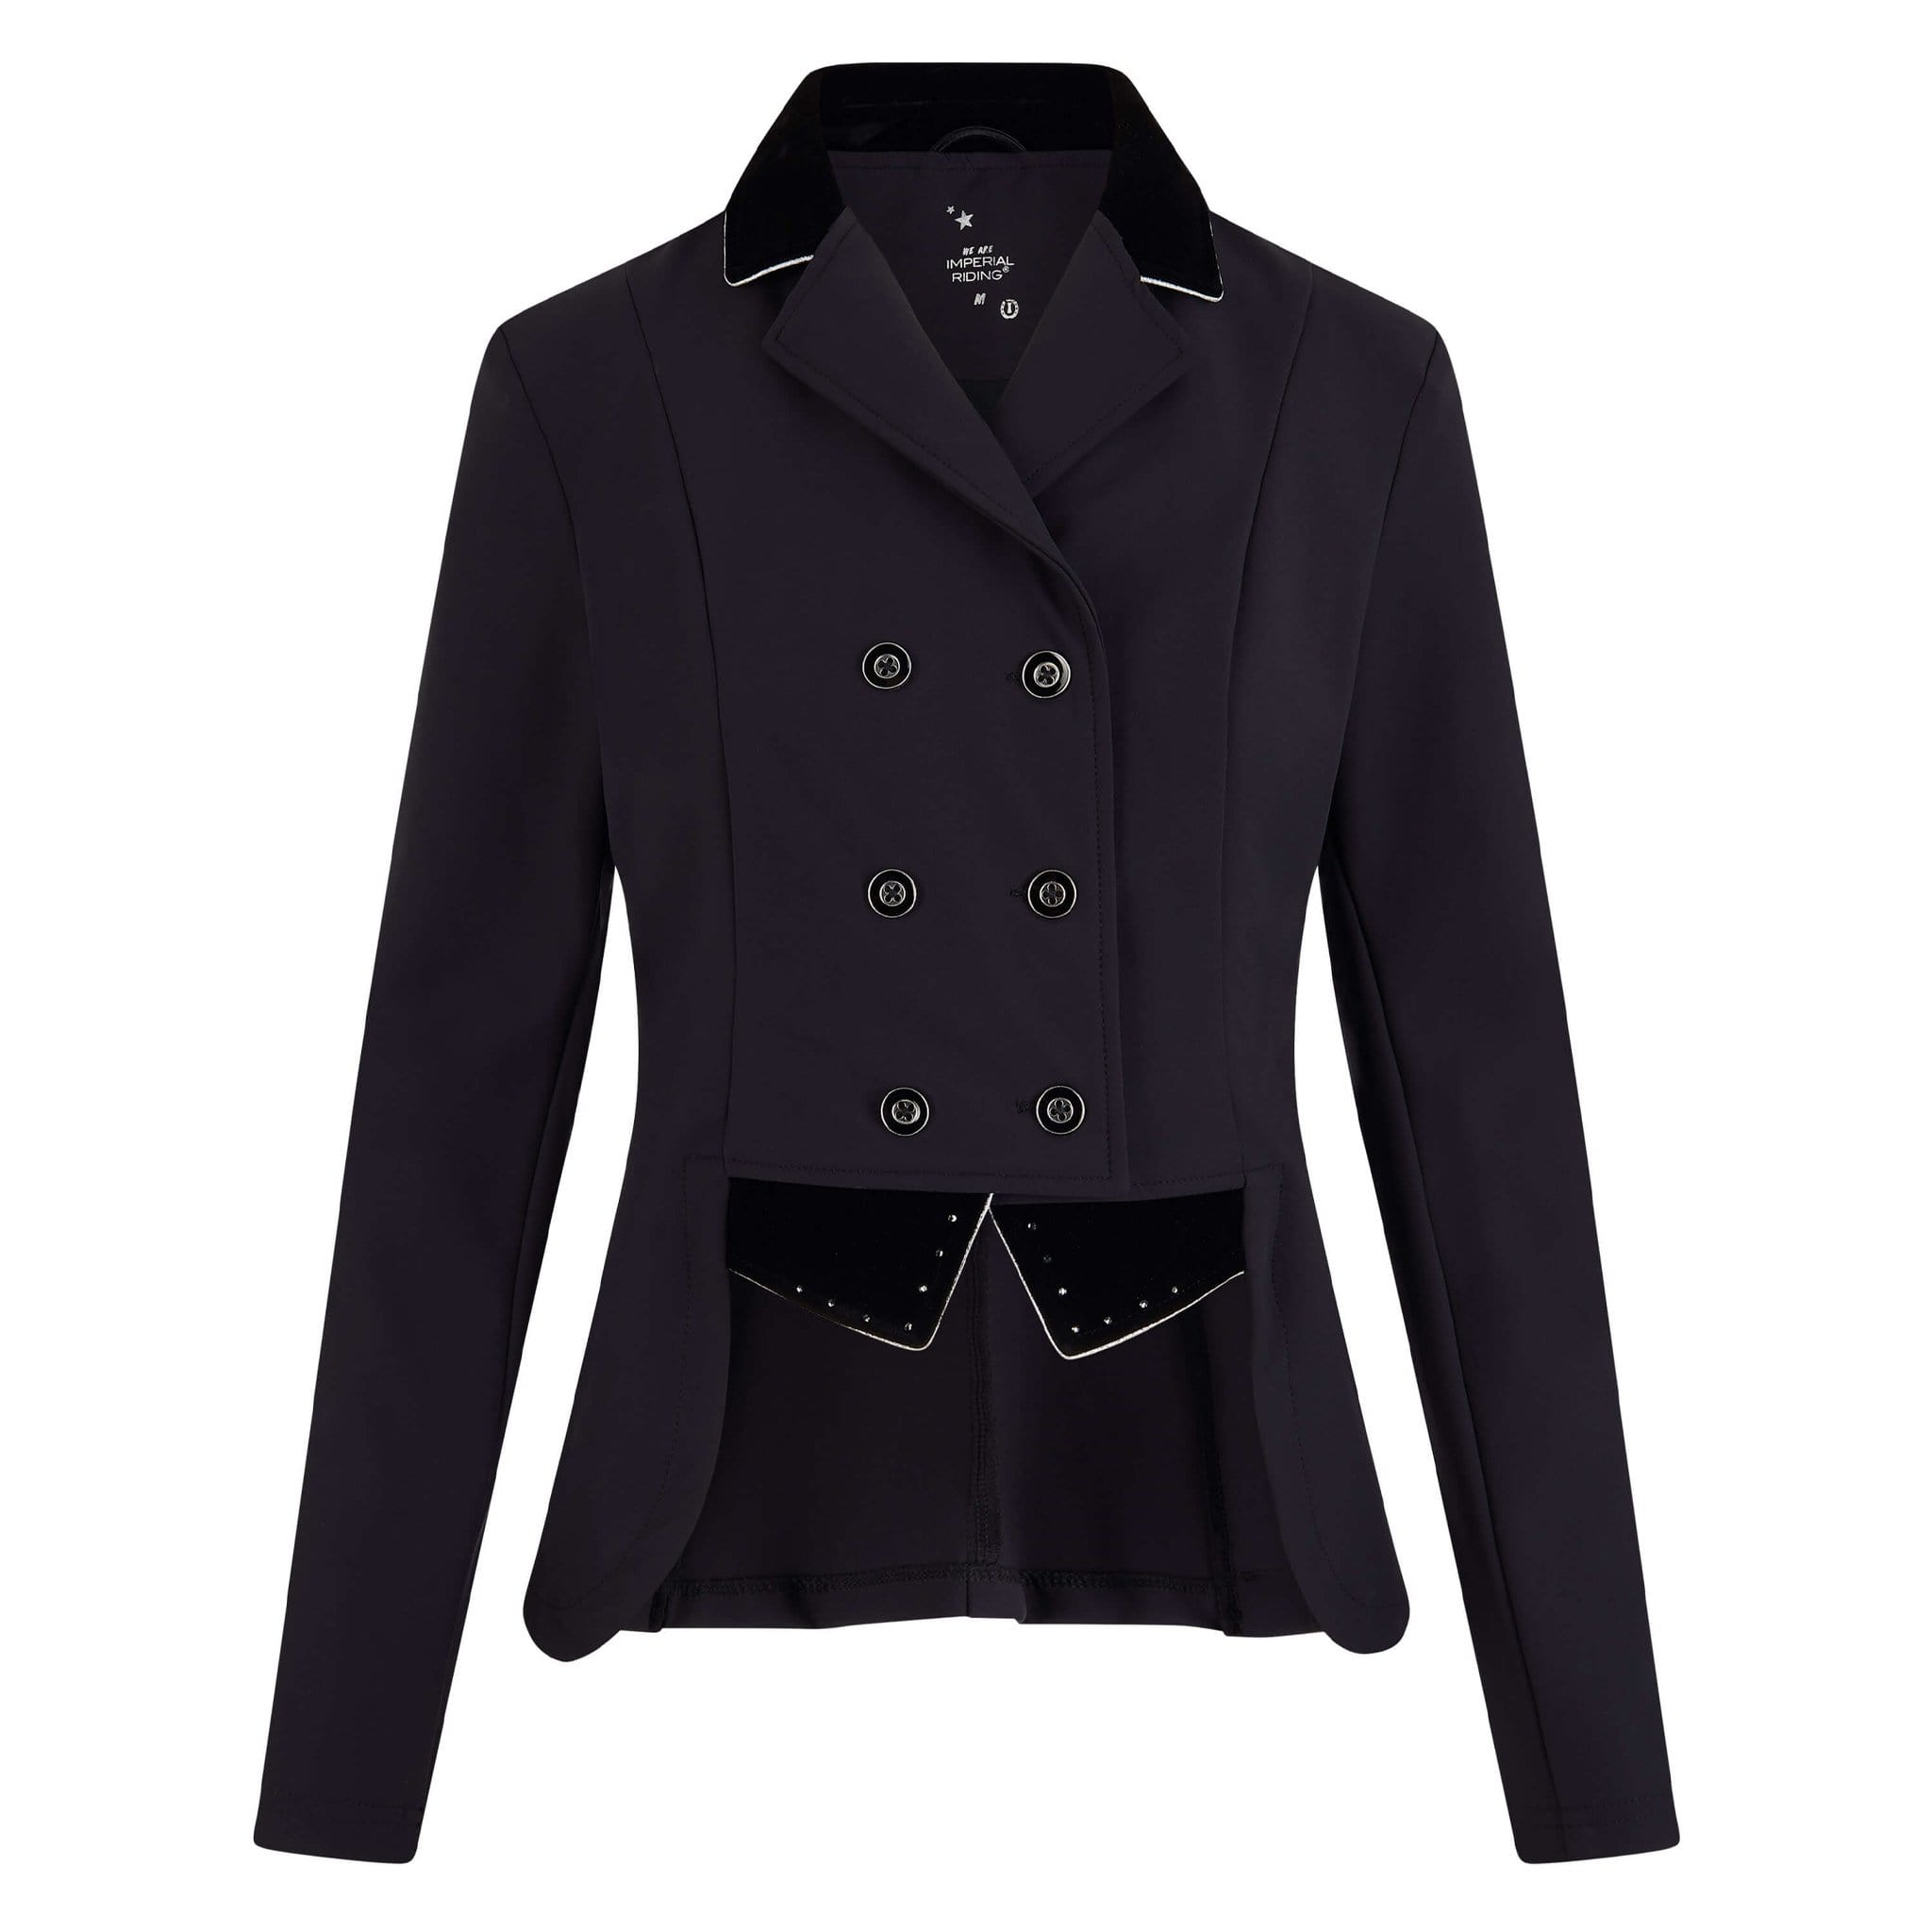 Imperial Riding Girl's Expactacular Competition Jacket